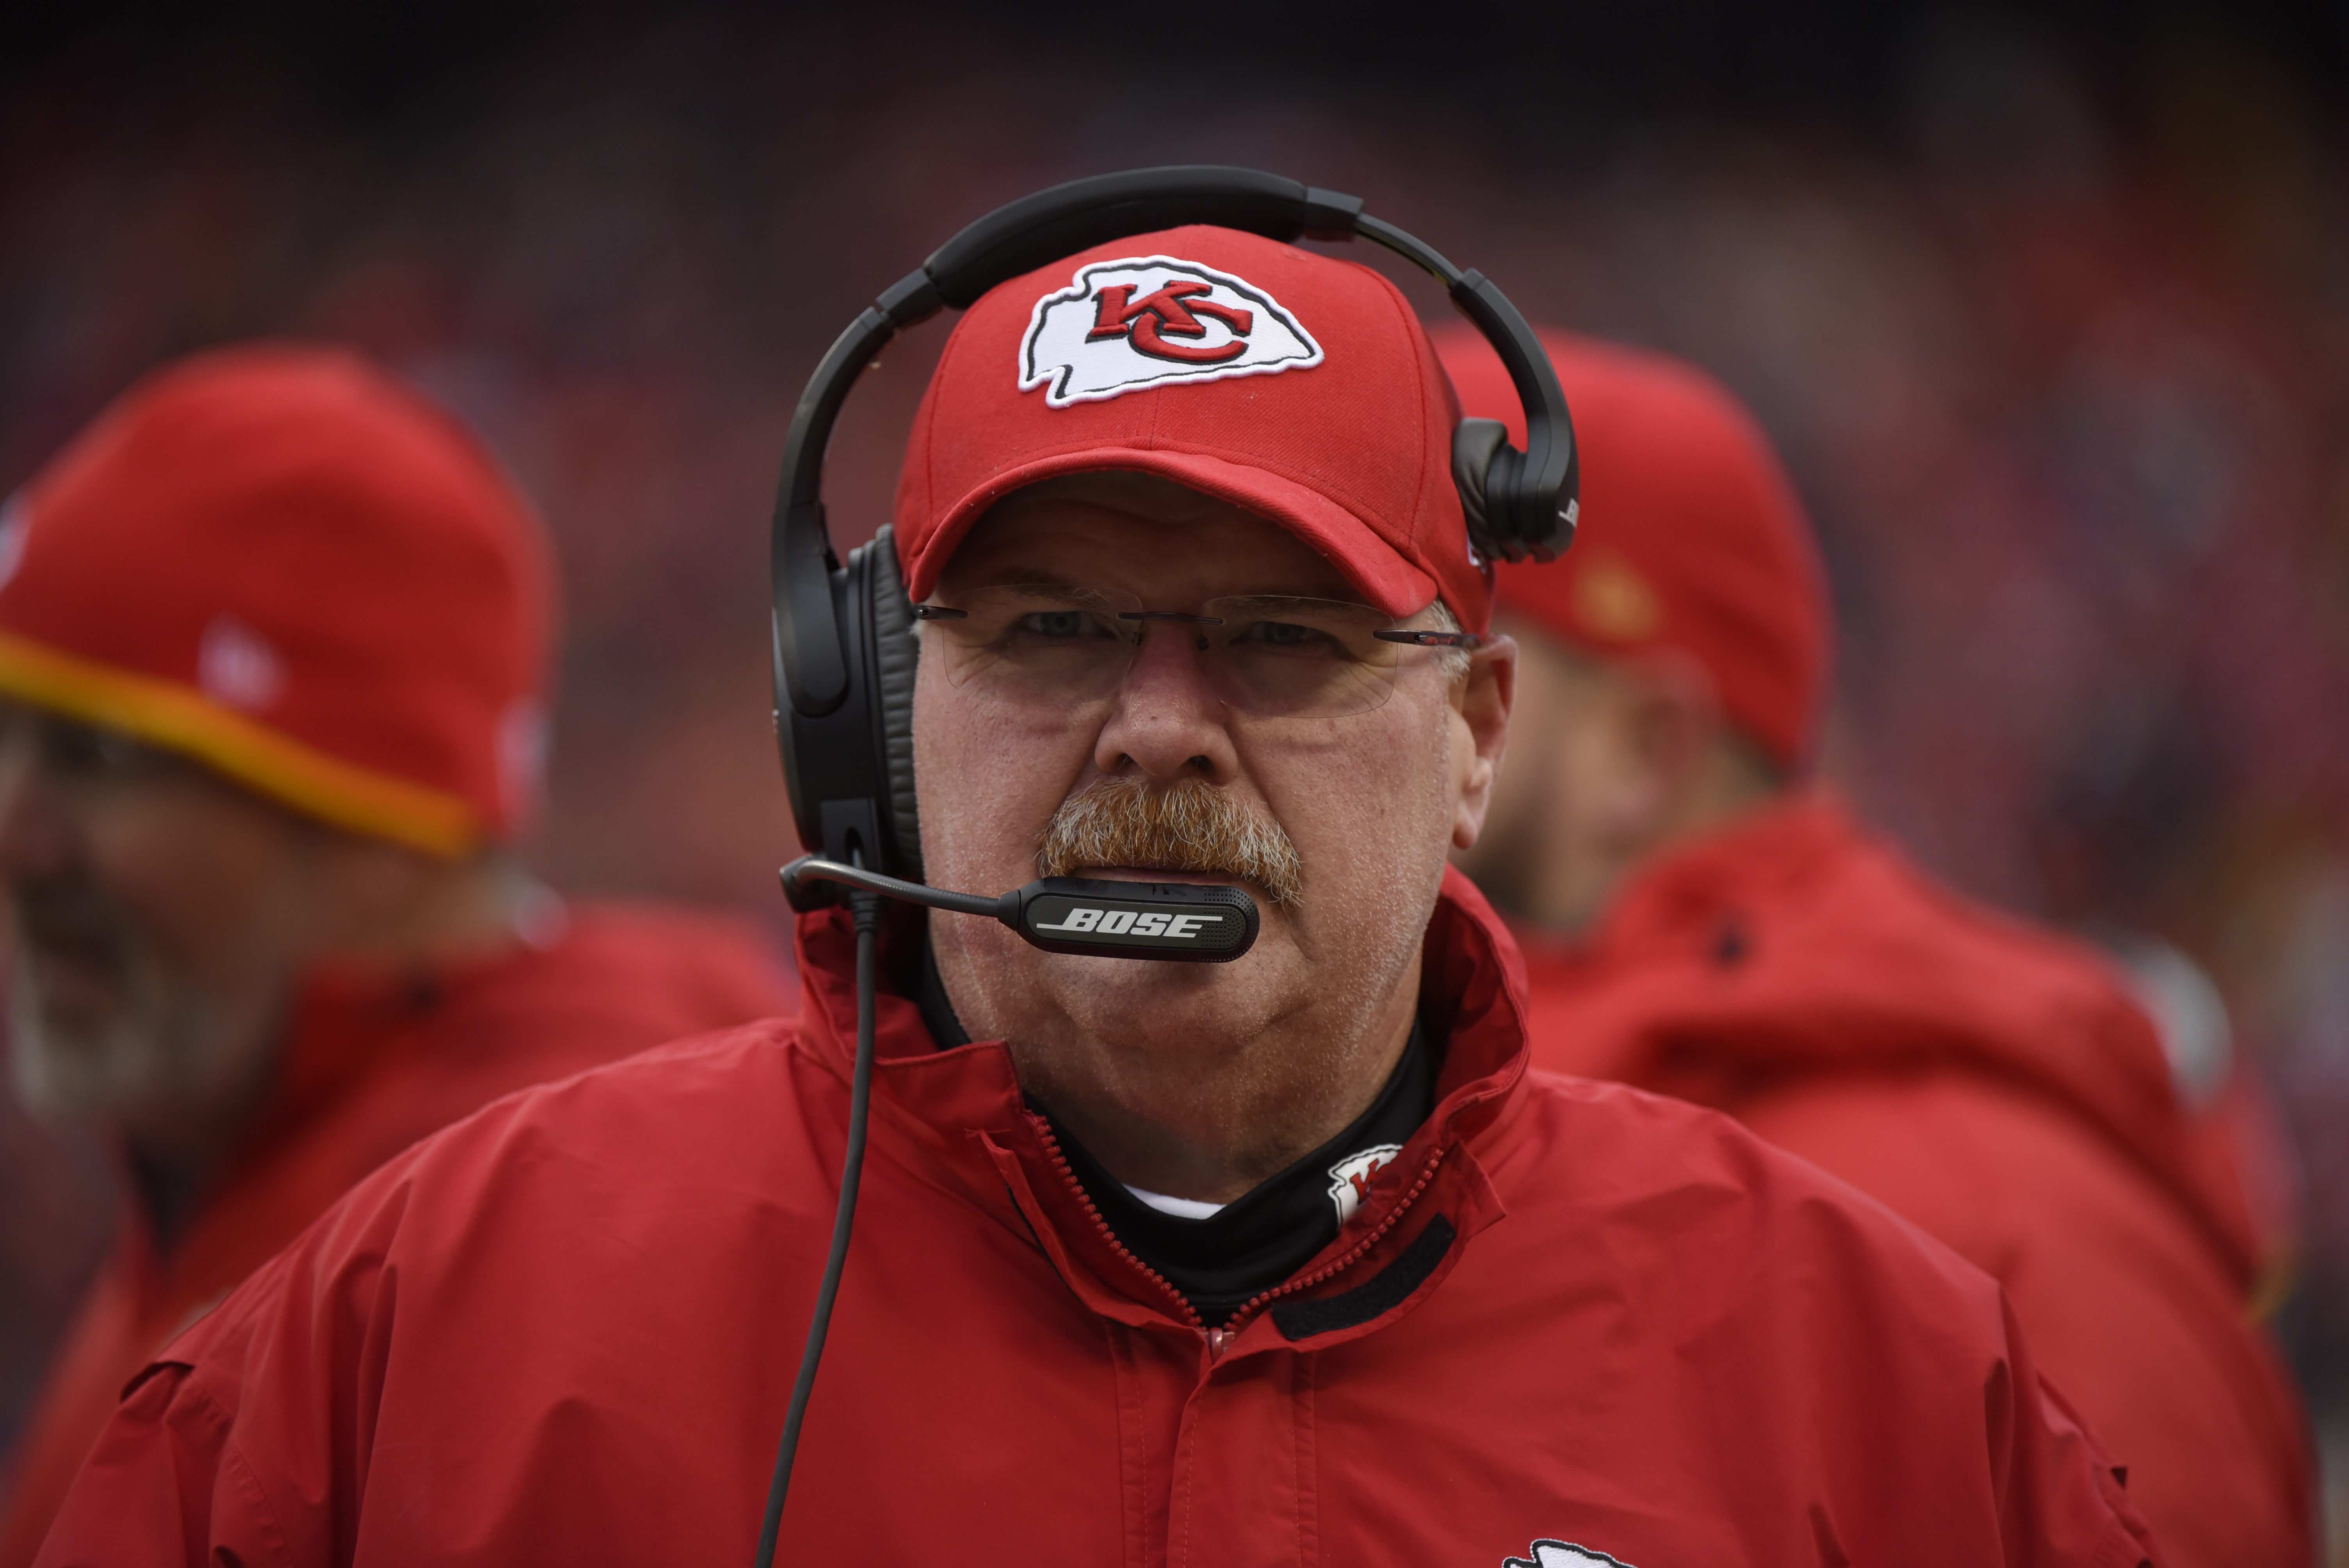 FILE - In this Dec. 27, 2015, file photo, Kansas City Chiefs head coach Andy Reid follows from the sideline during the first half of an NFL football game against the Cleveland Browns in Kansas City, Mo. Reid encourages his players to express their persona